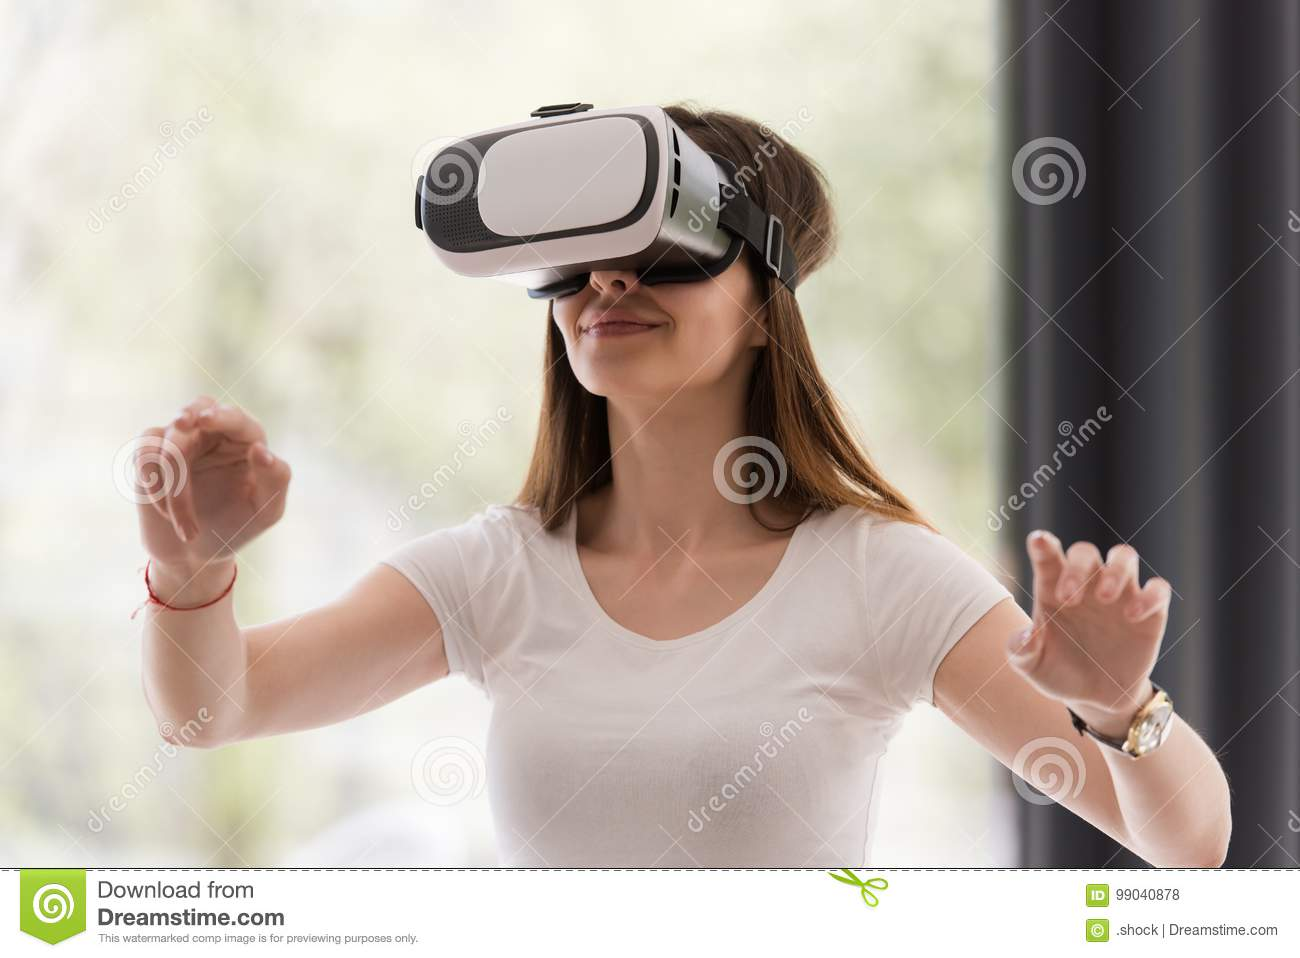 bfc15420ebbc Smile happy woman getting experience using VR-headset glasses of virtual  reality at home